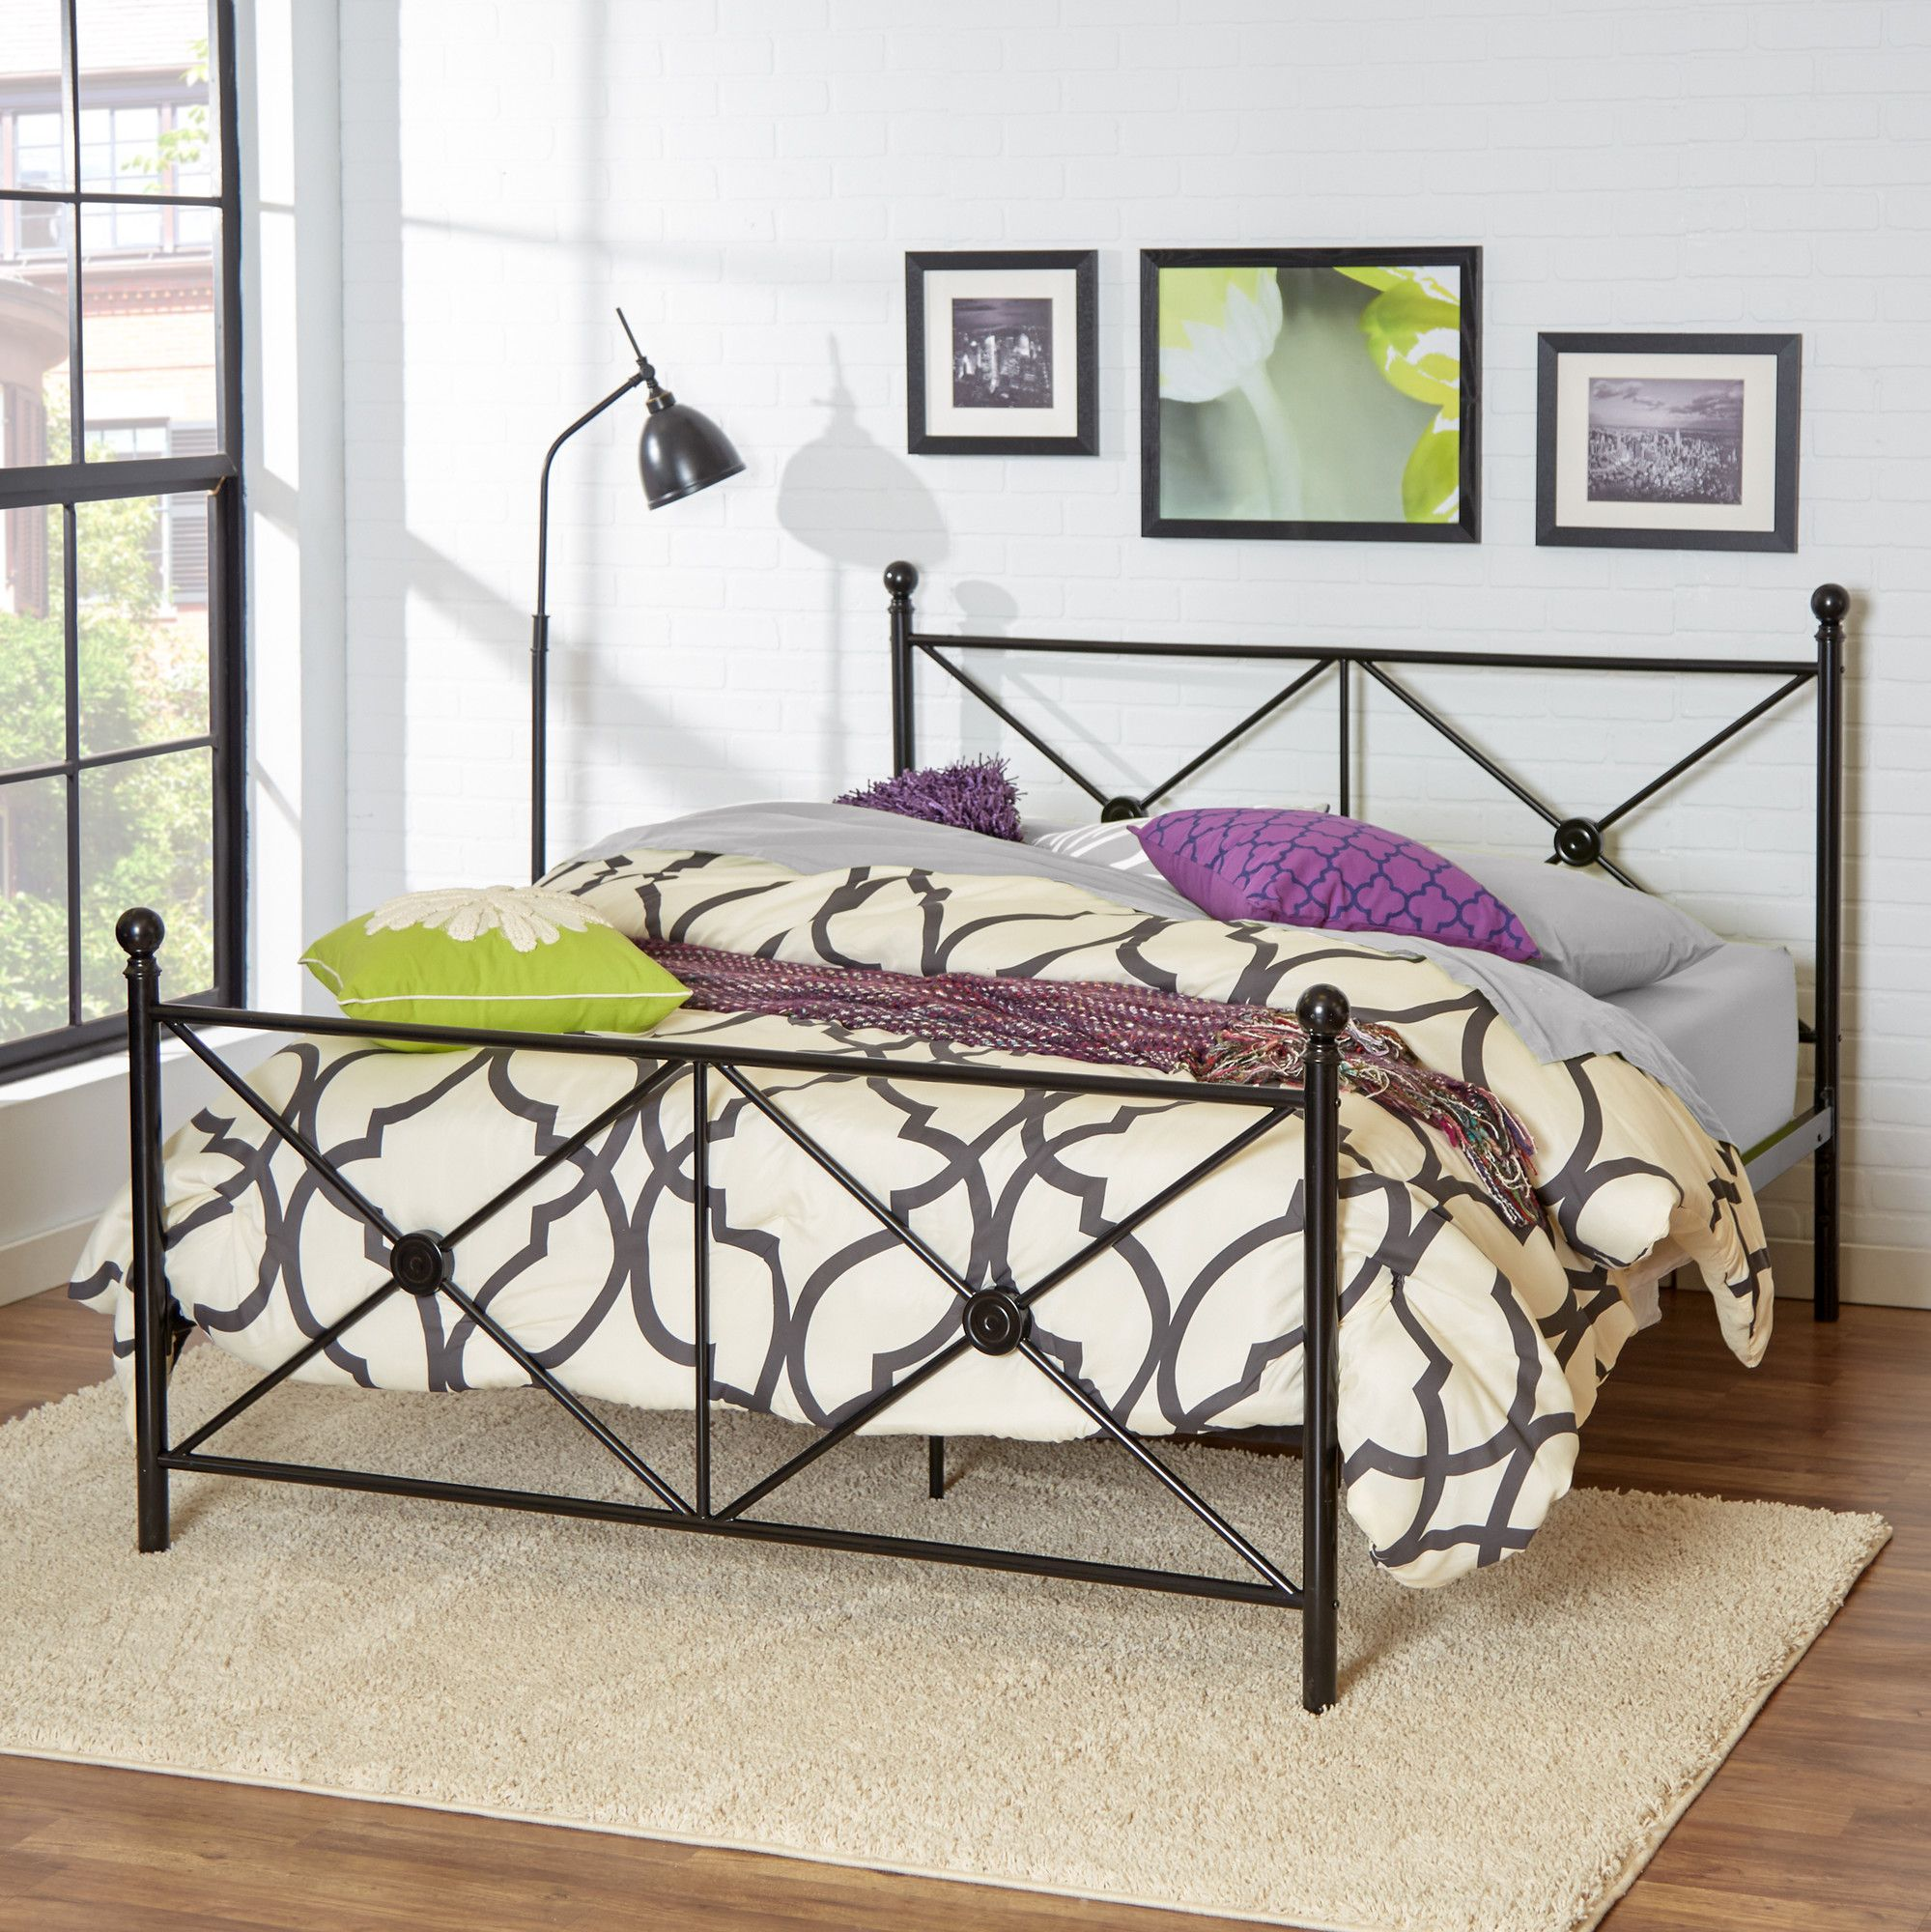 Wayfair.com - Online Home Store for Furniture, Decor, Outdoors ...